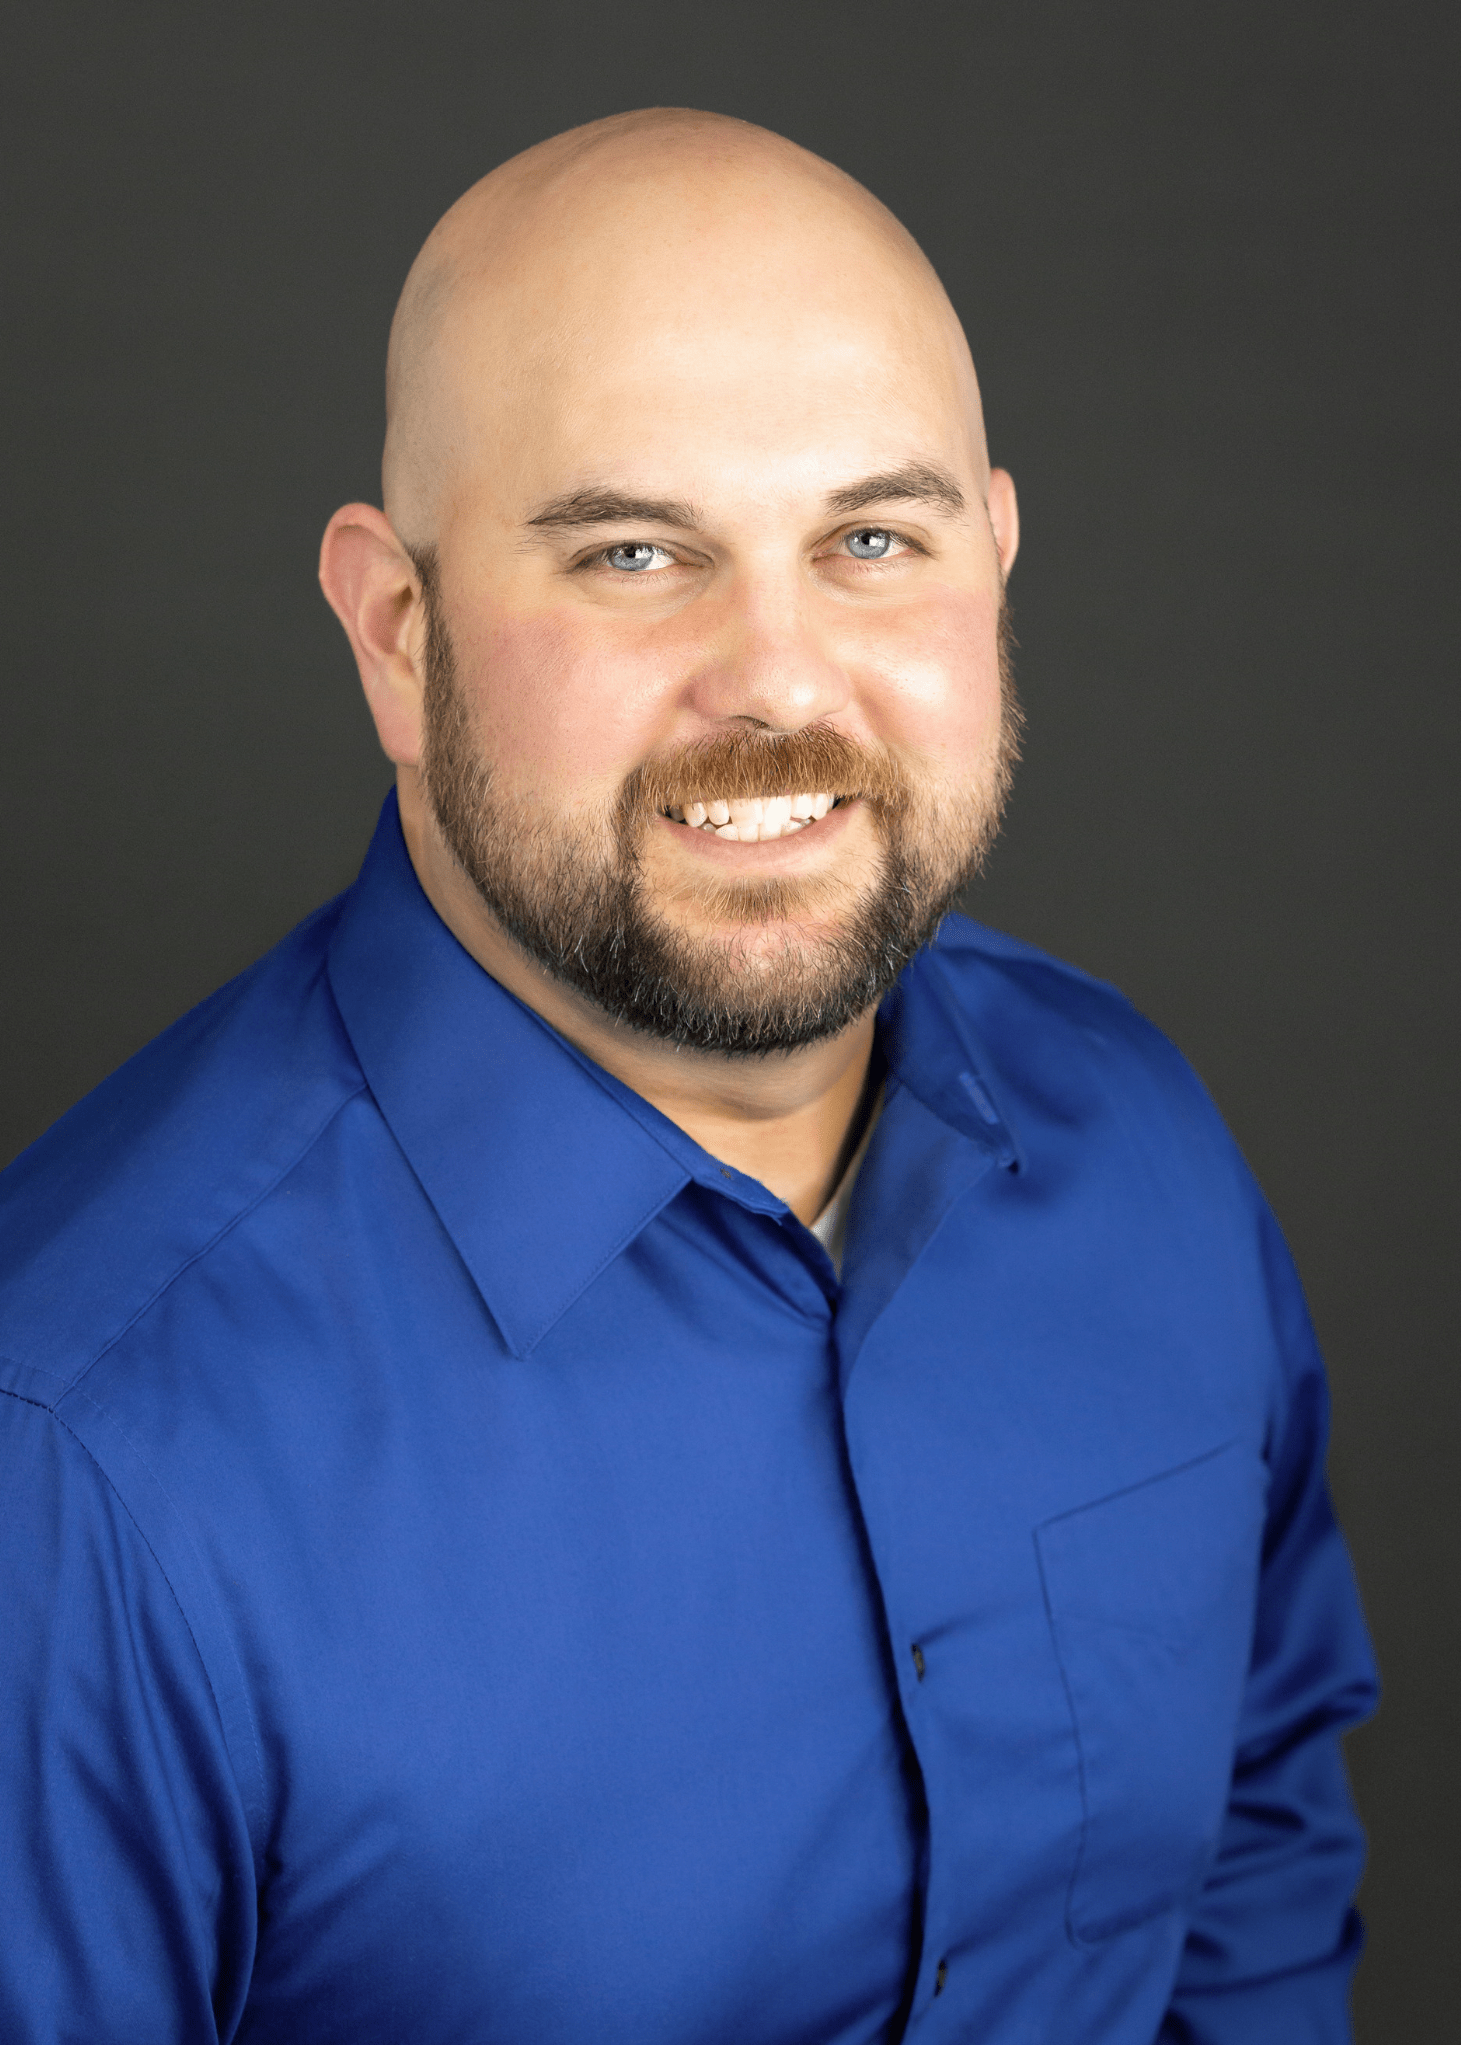 Sam Daniel, Windermere Real estate, Trusted agent, real estate, Whidbey Island, Washington, Oak Harbor, house hunting, Island life, buy, sell, invest